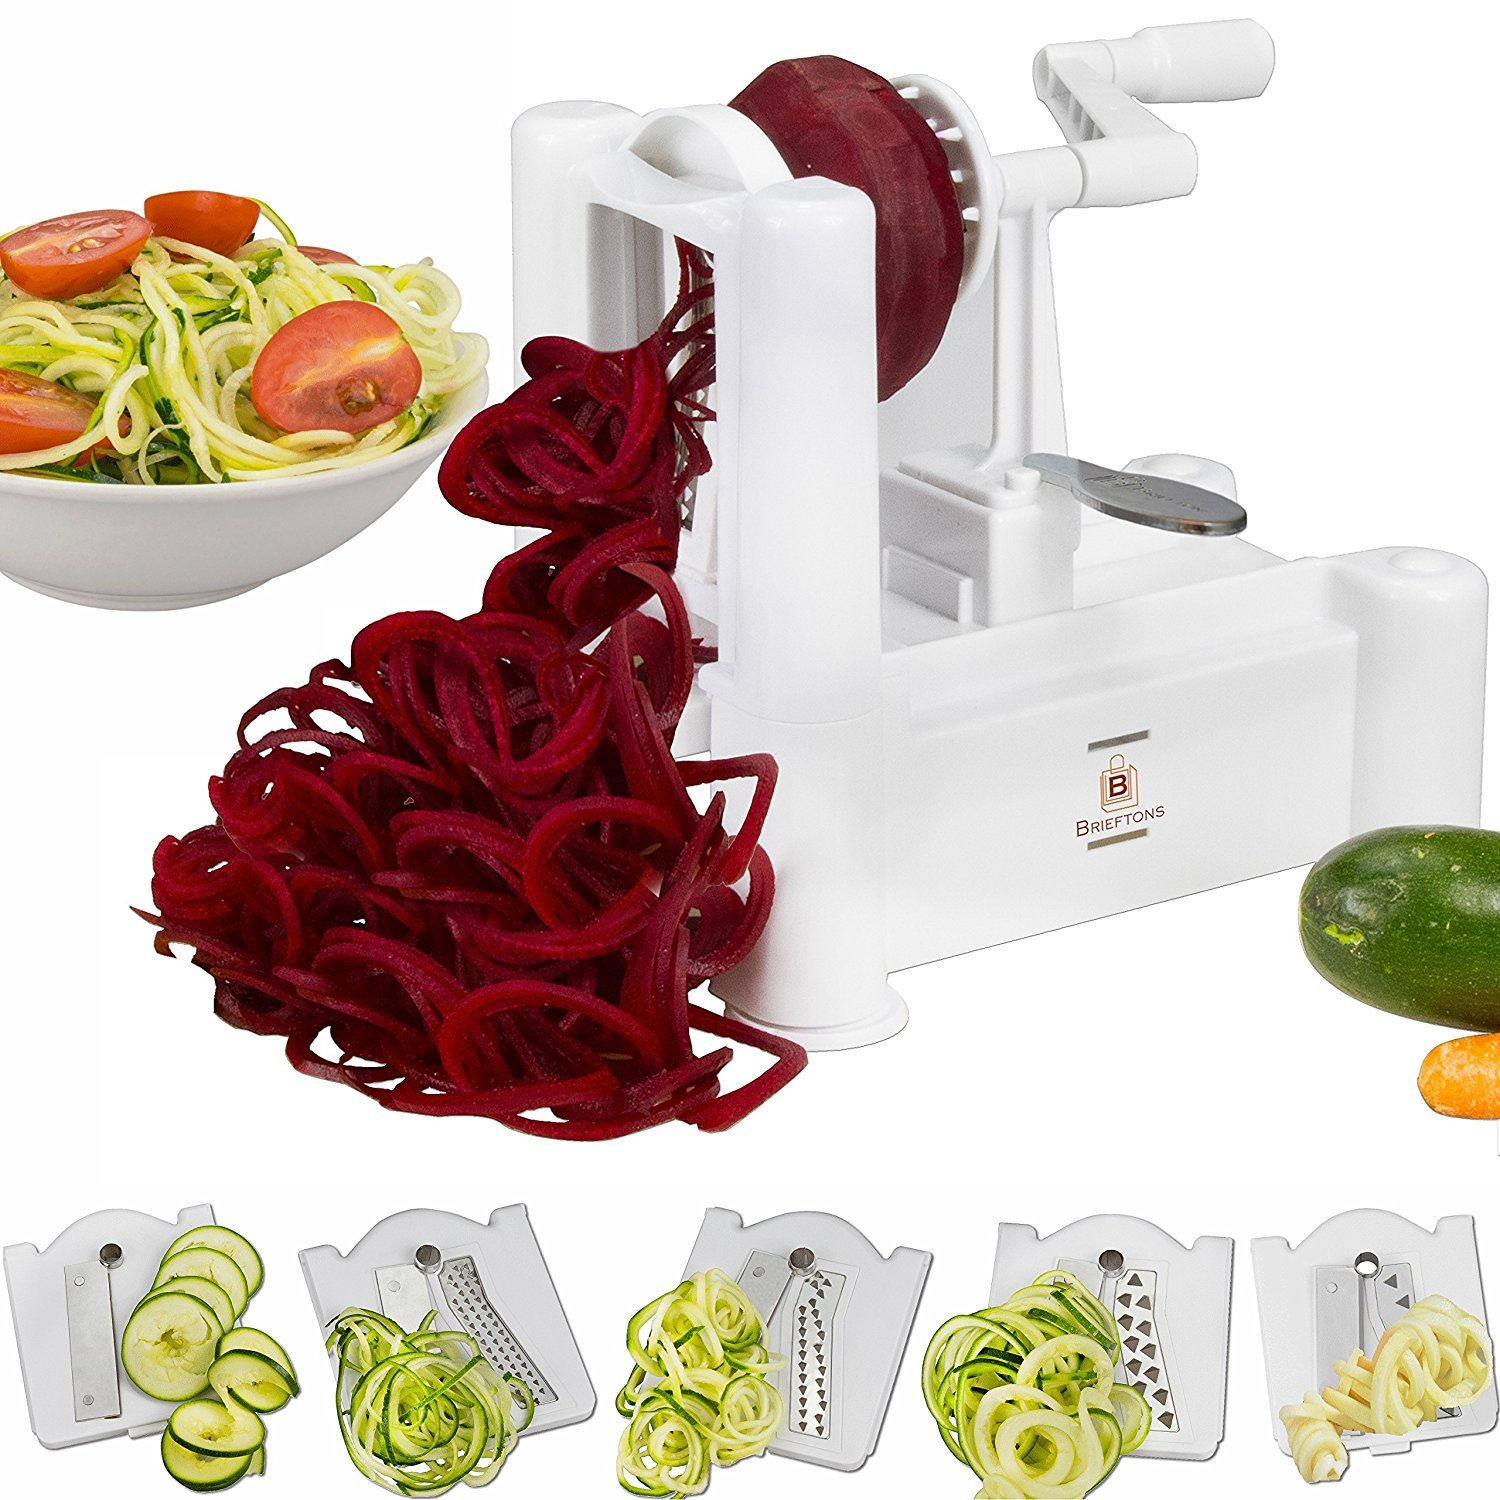 Brieftons 5-Blade Spiralizer: Strongest-and-Heaviest Duty Vegetable Spiral Slicer, Best Veggie Pasta Spaghetti Maker for Low Carb/Paleo/Gluten-Free Meals, With 3 Exclusive Recipe eBooks 820103271769